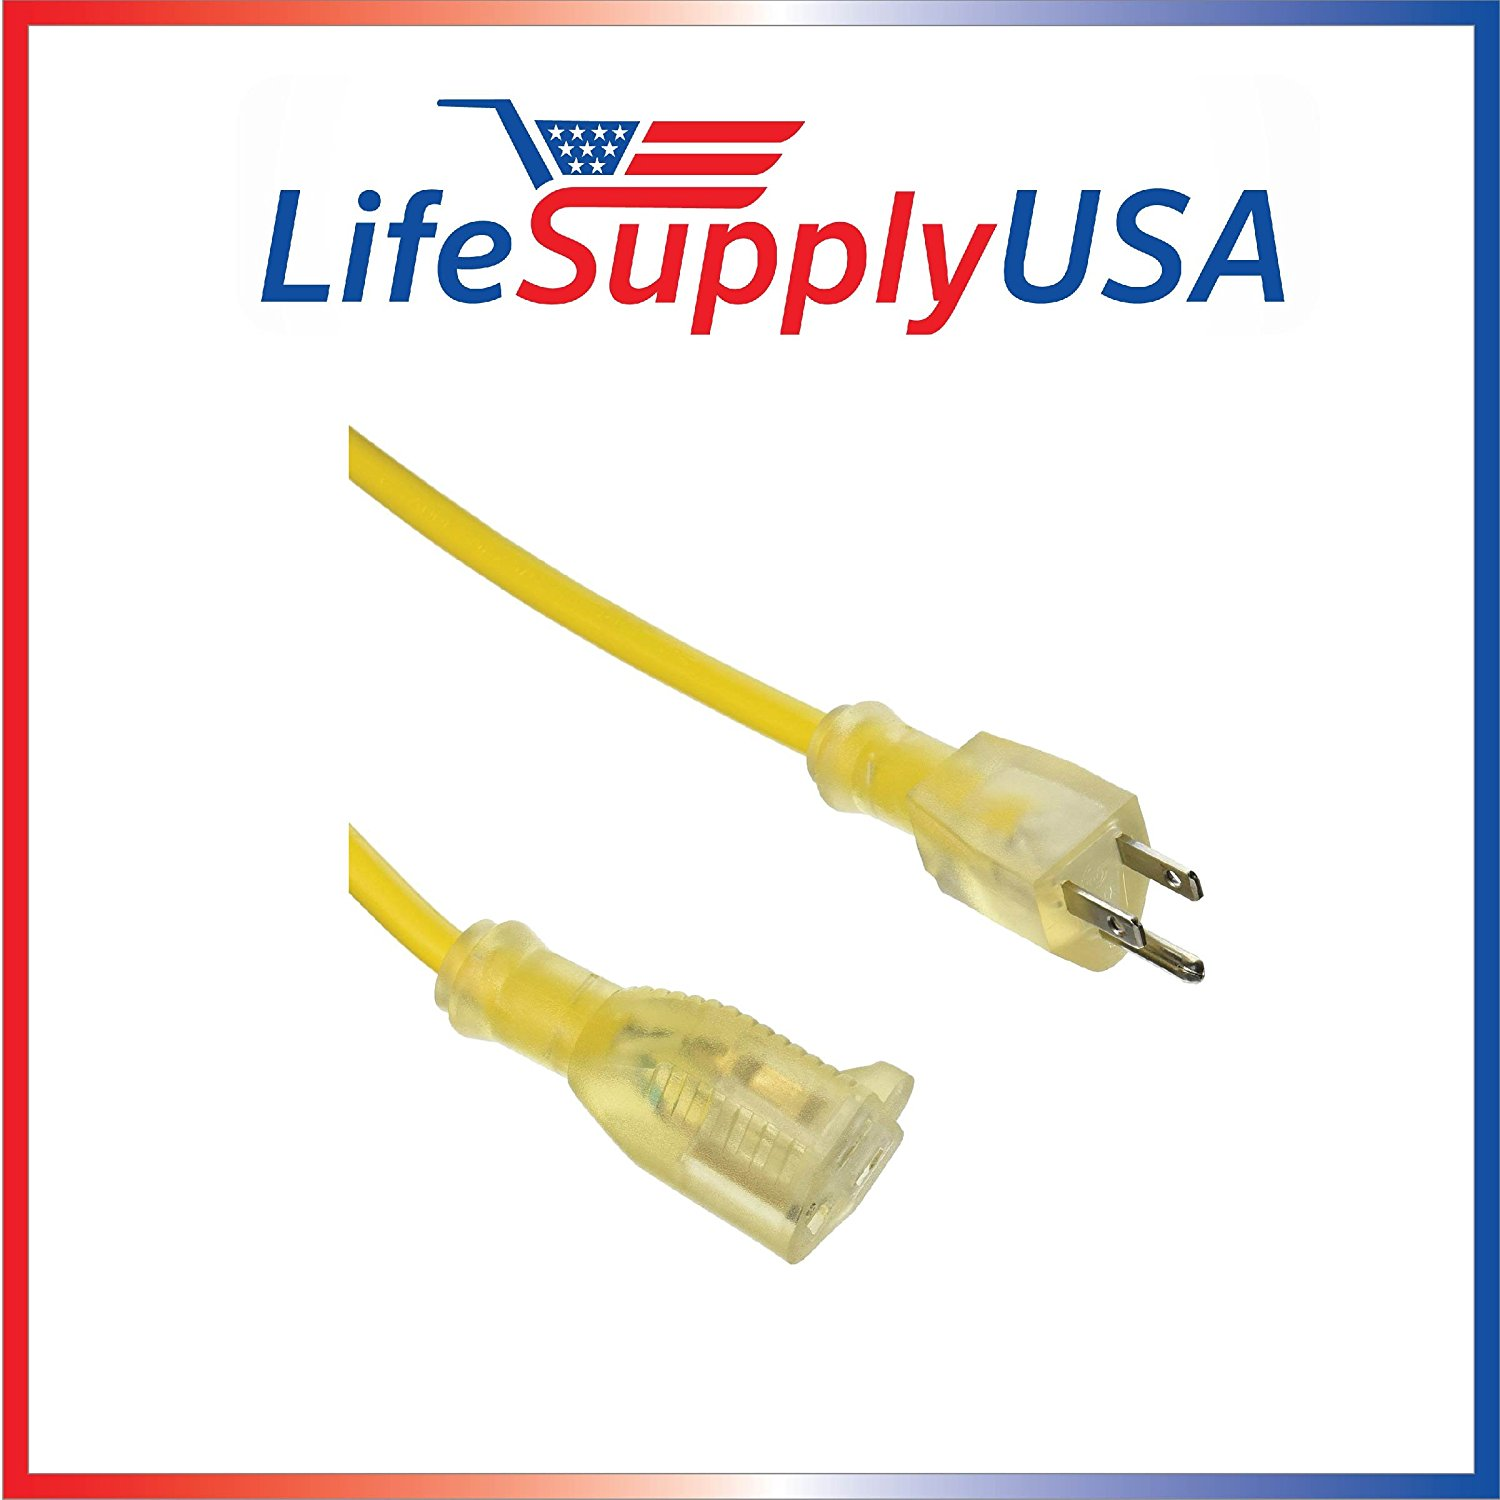 100 Pack - 14/3 200 Feet SJT Lighted End Indoor / Outdoor Extension cord by LifeSupplyUSA